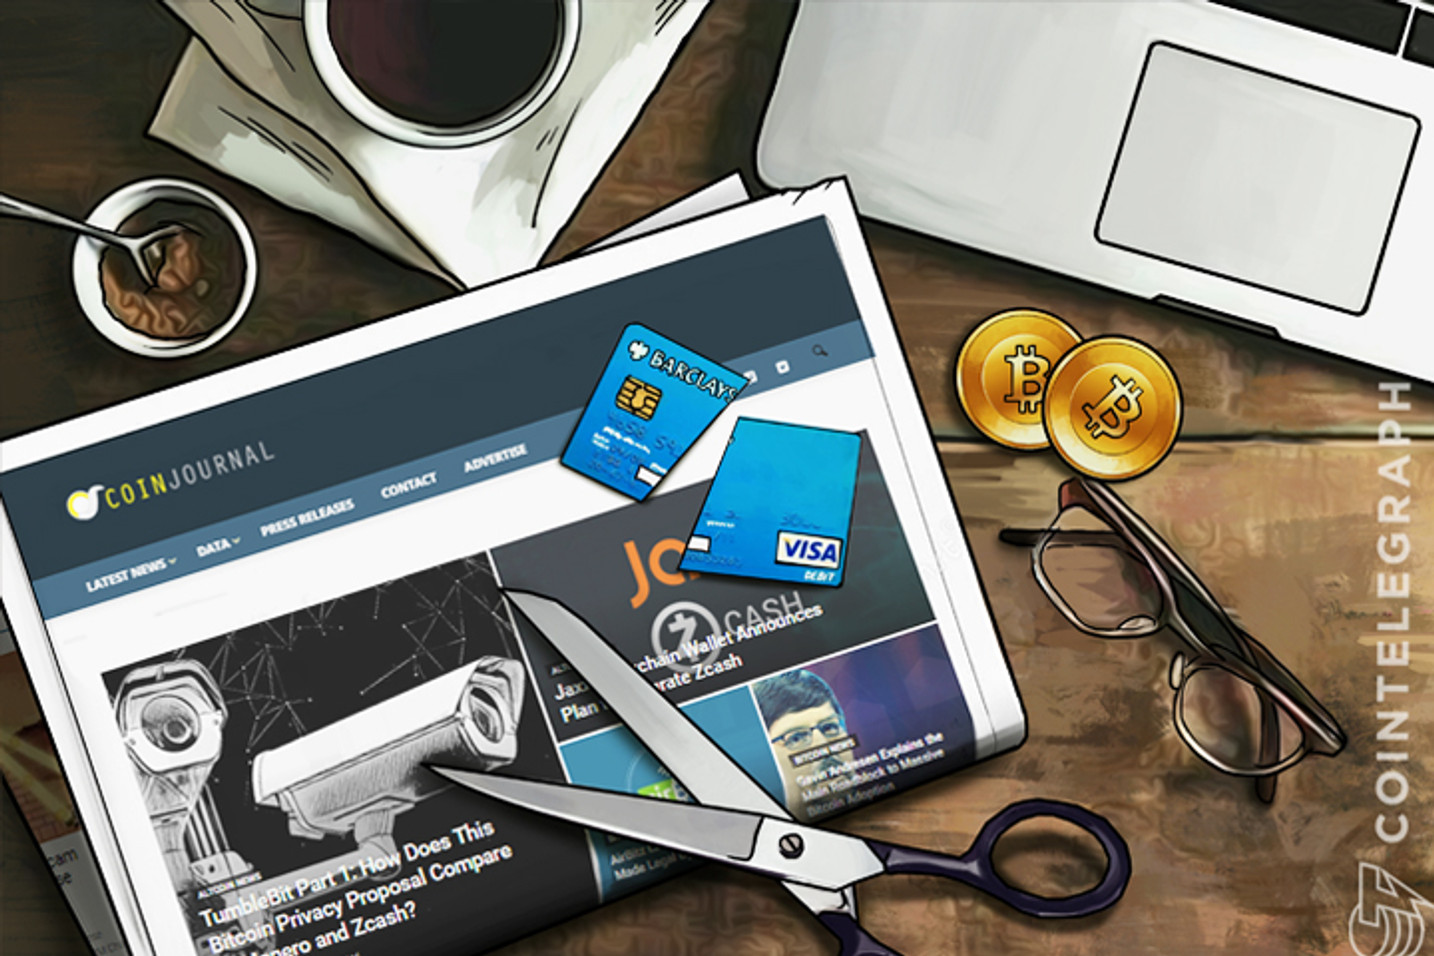 Barclays Shuts Down CoinJournal Bank Account, Outrages Bitcoin Community